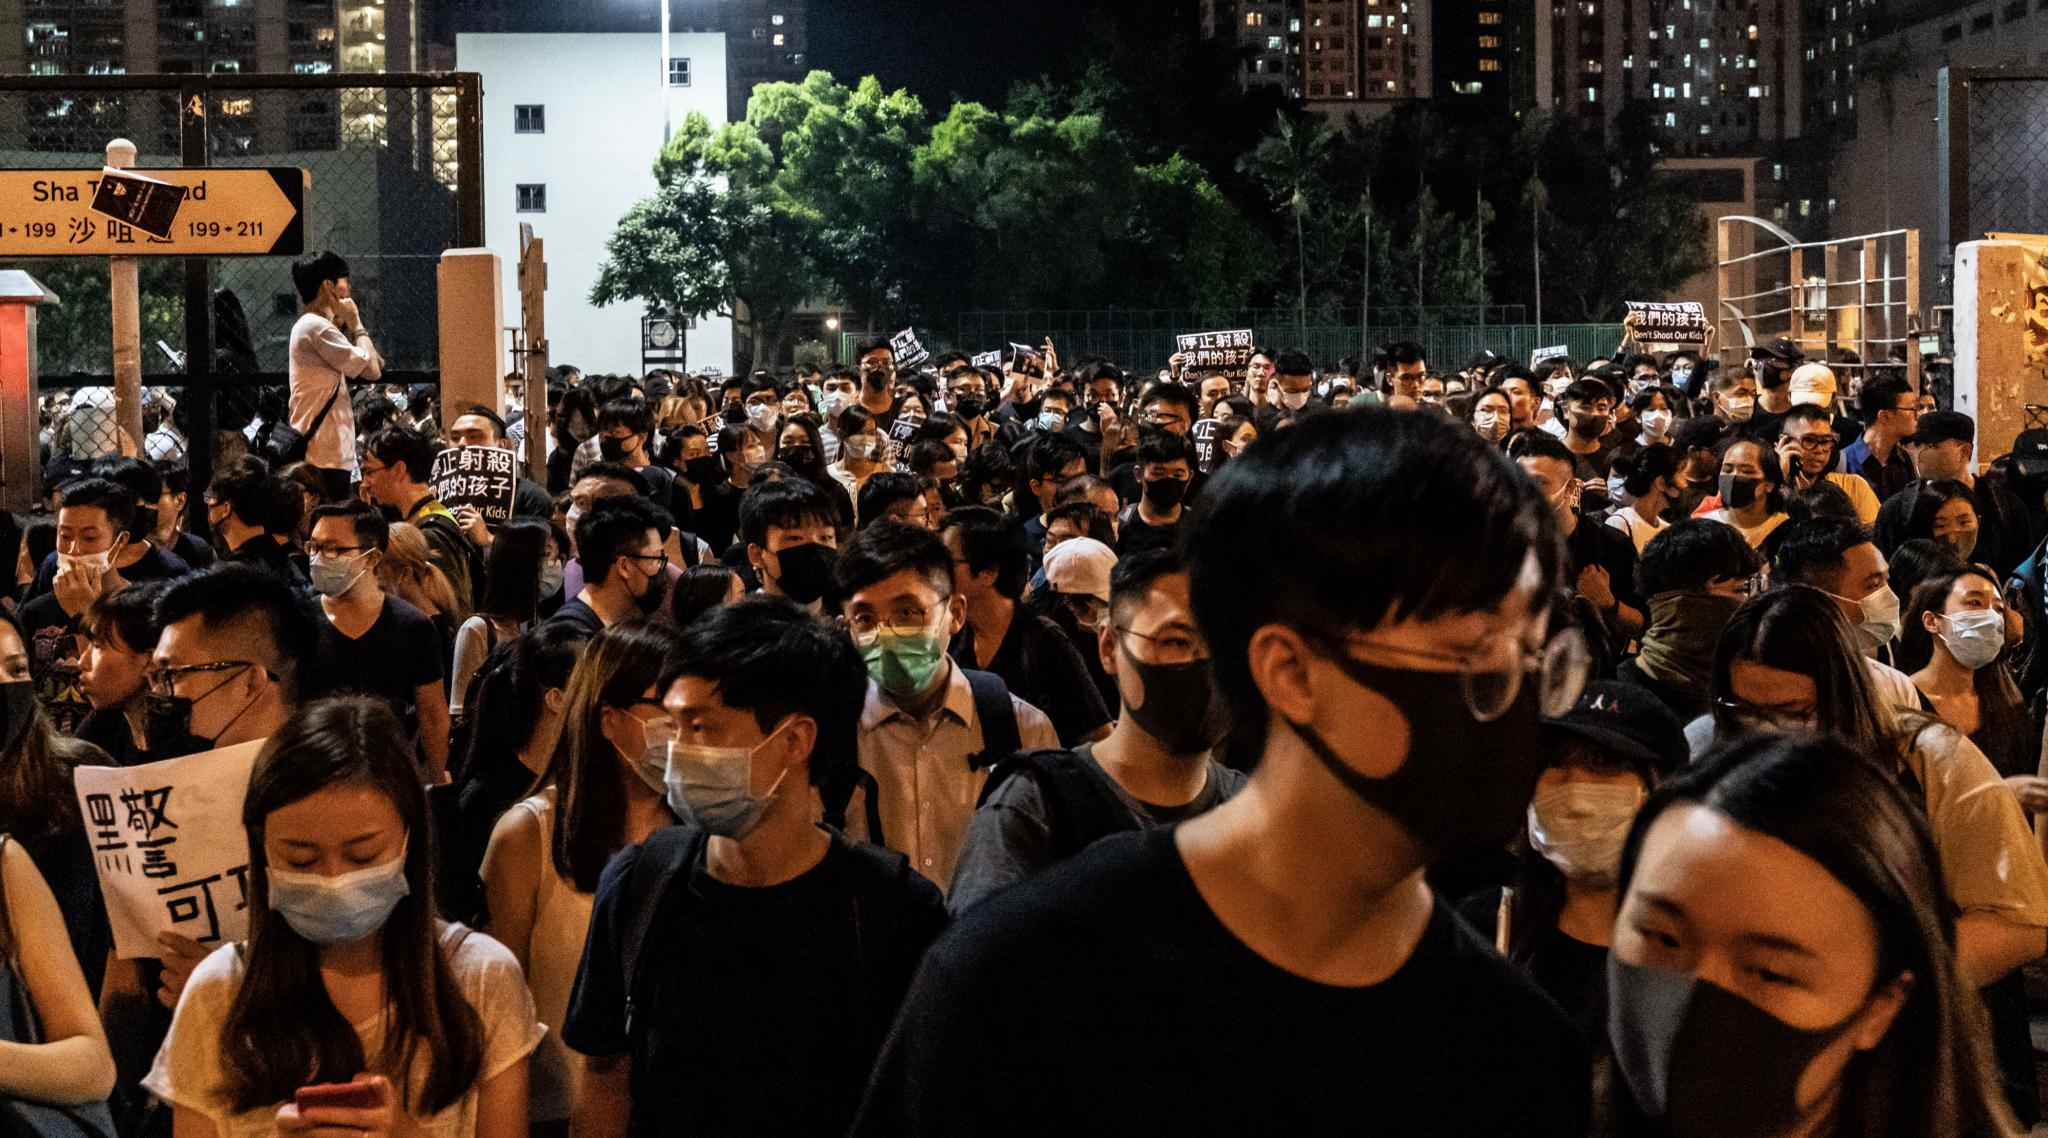 Hong Kong to Ban Face Masks in Protest Crackdown: Reports